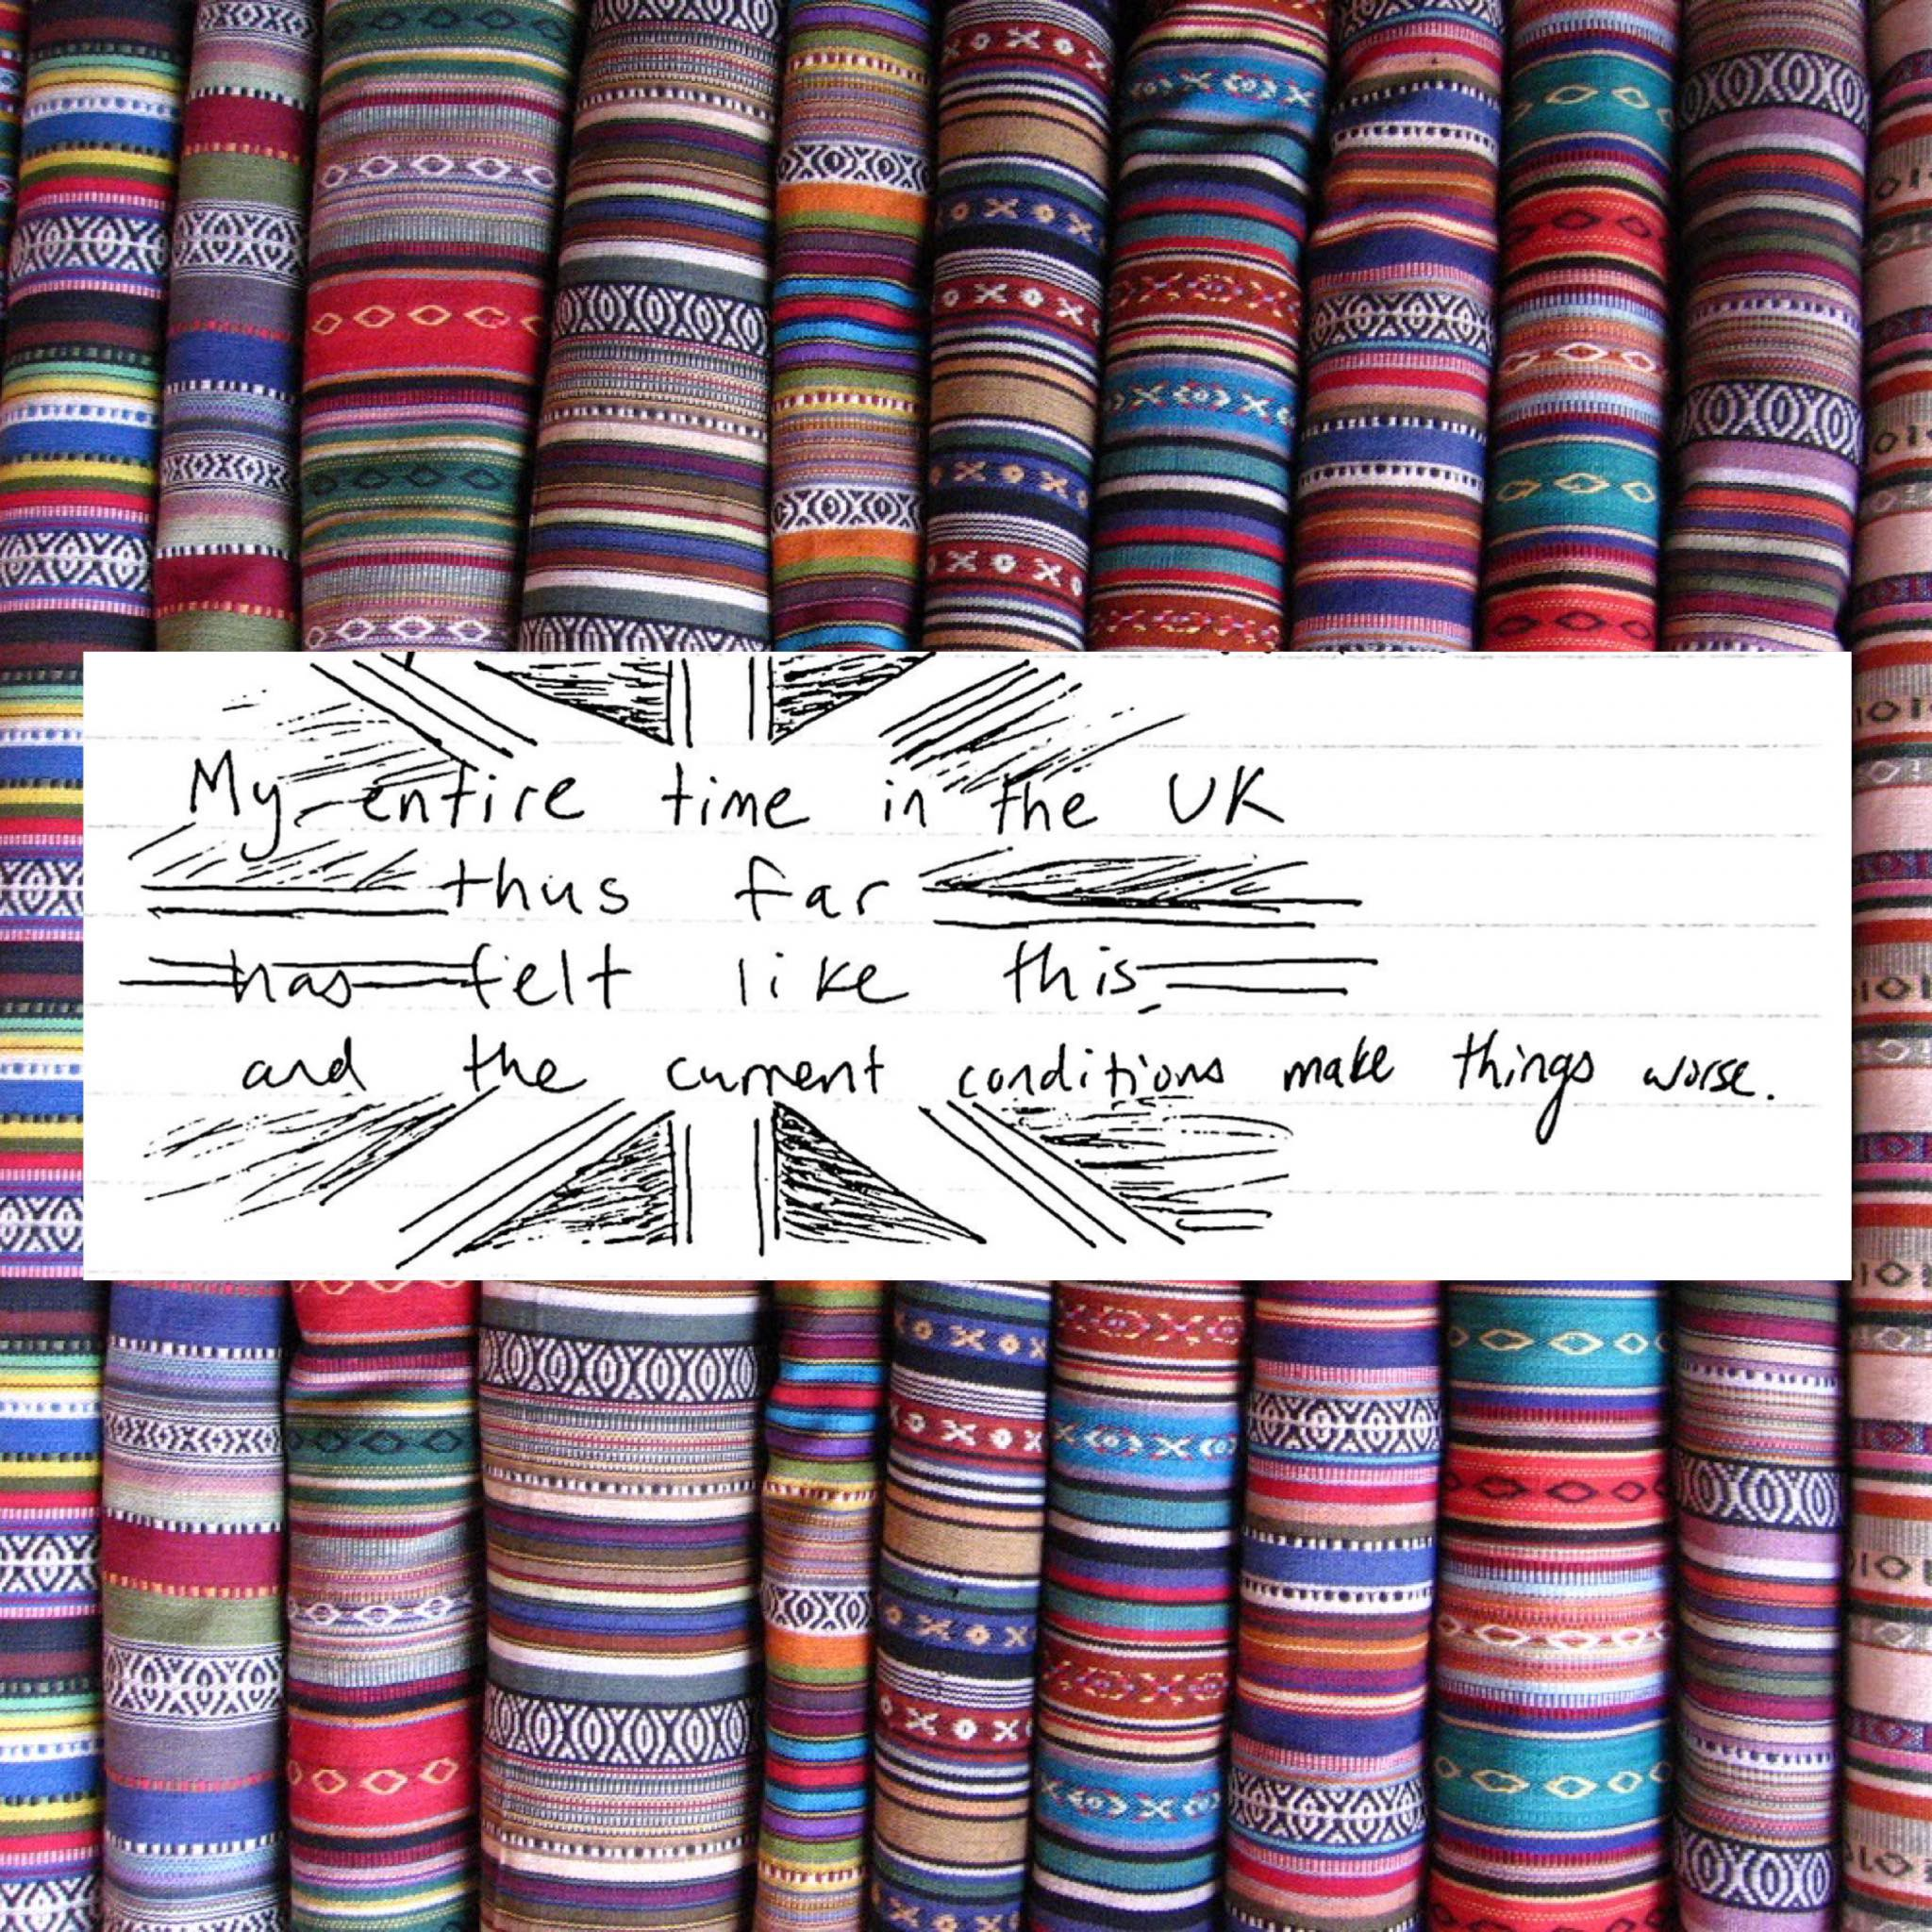 A background photo of colorful cloths has a white square and handwritten text, read in the photo caption.